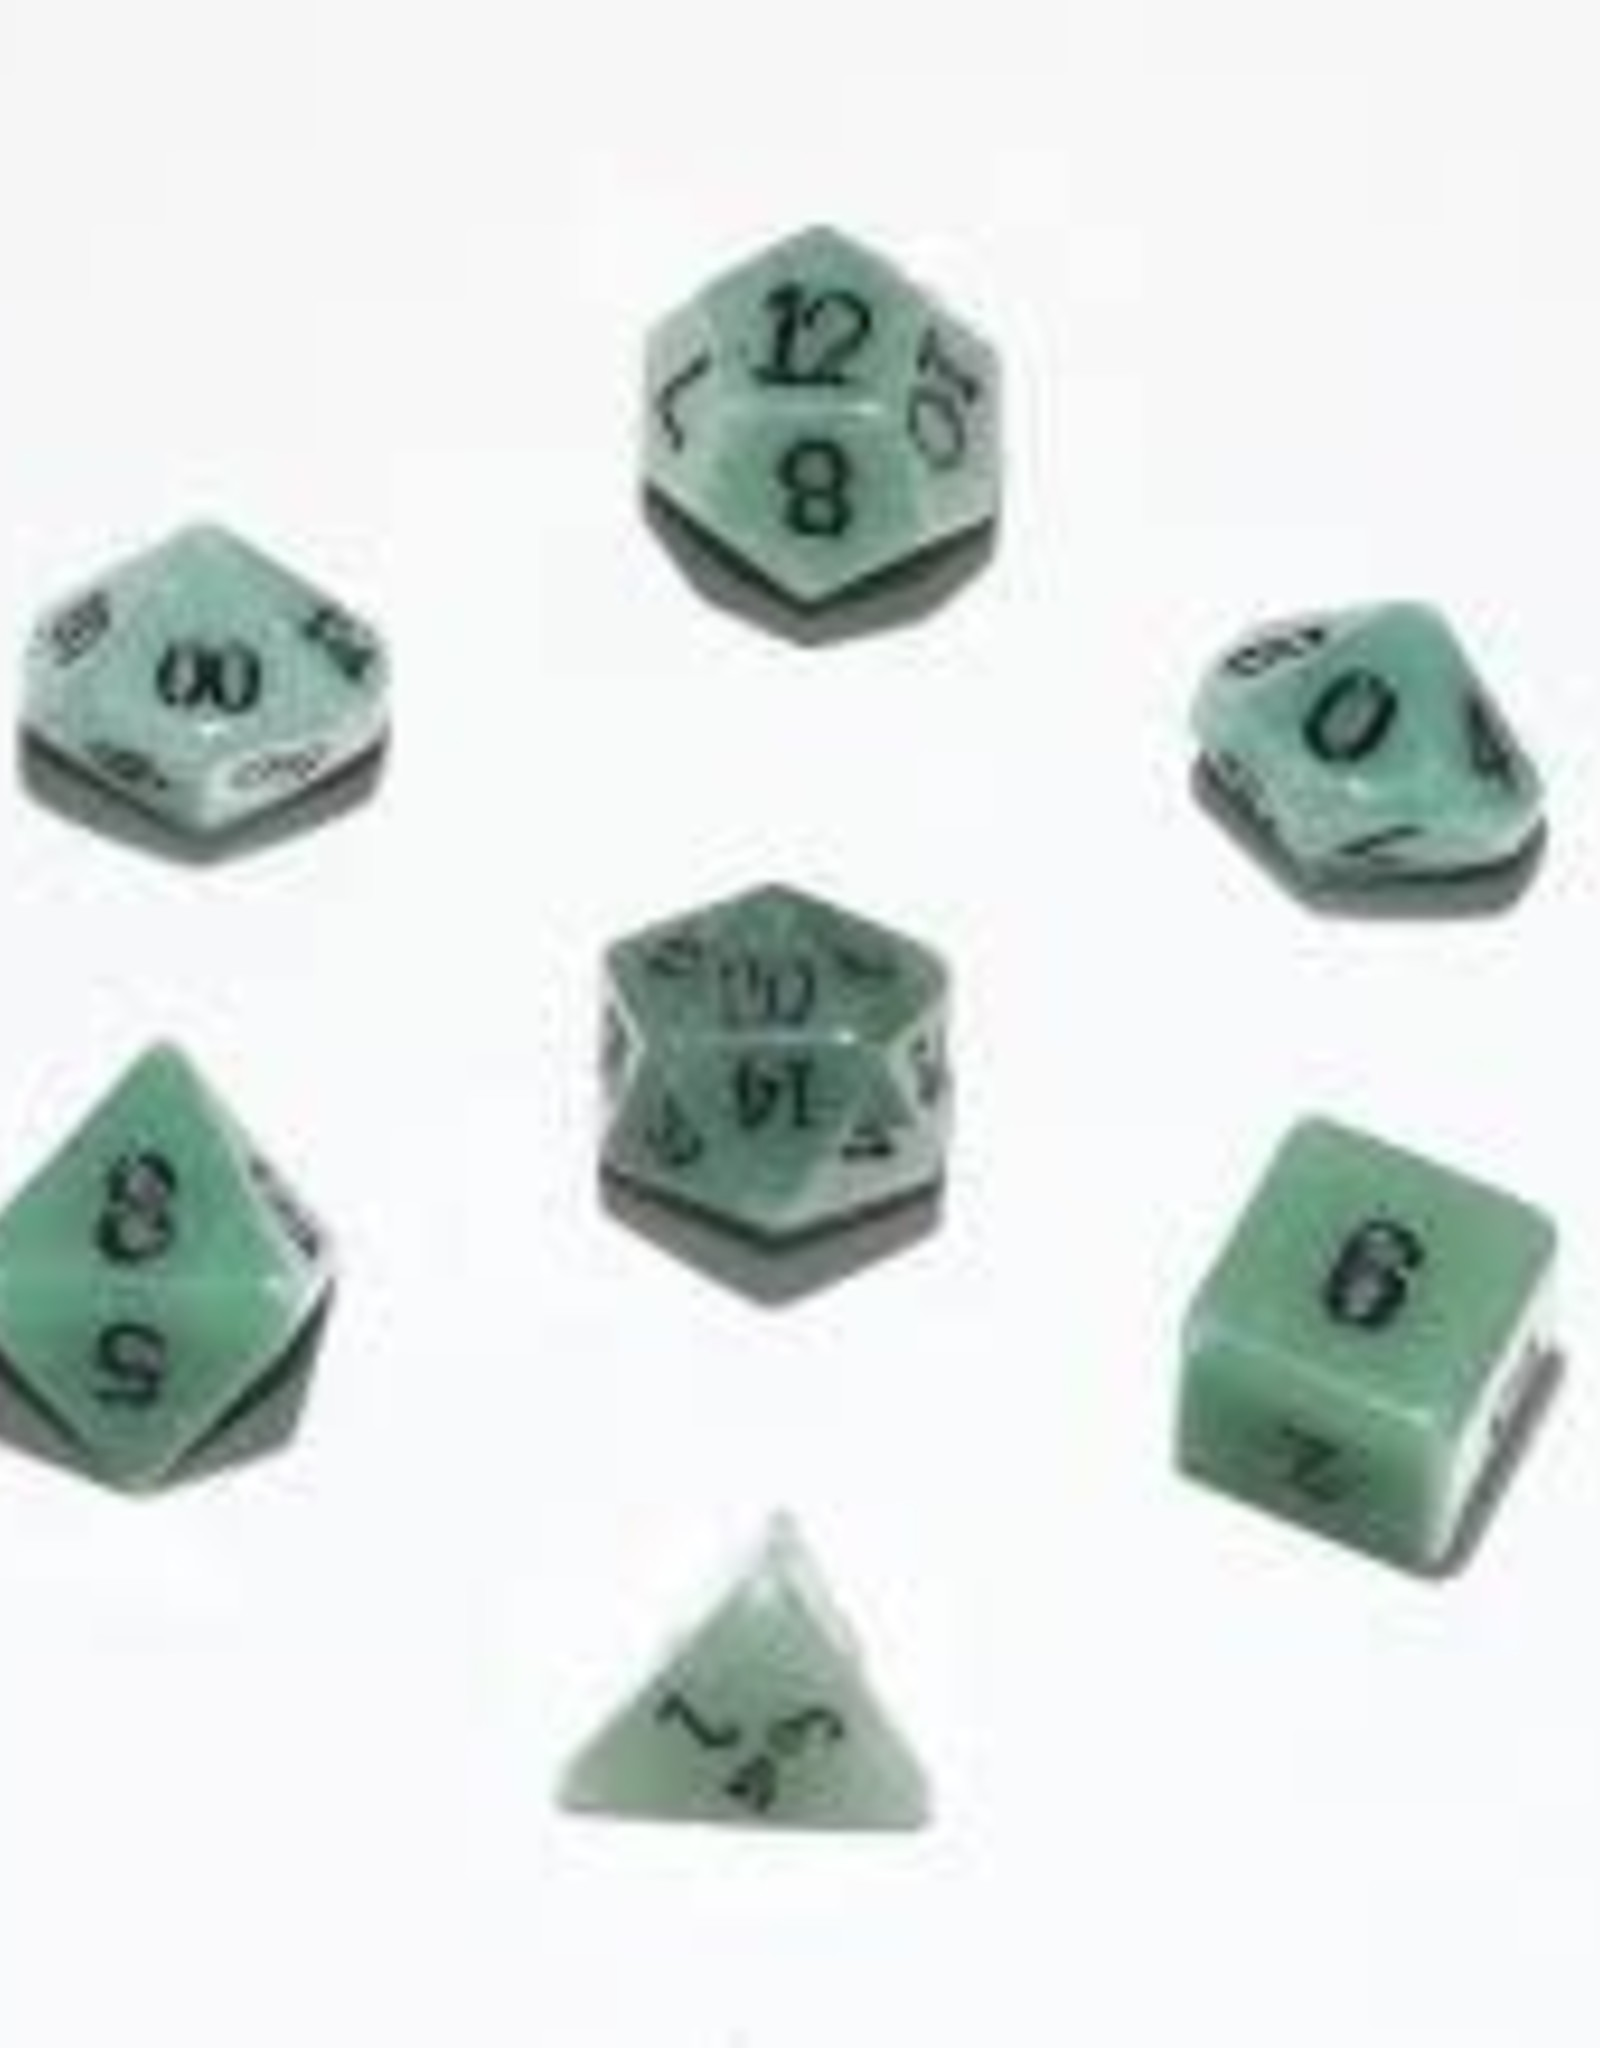 Crystal Caste 16mm China Jade, green 7 set (black numbers)